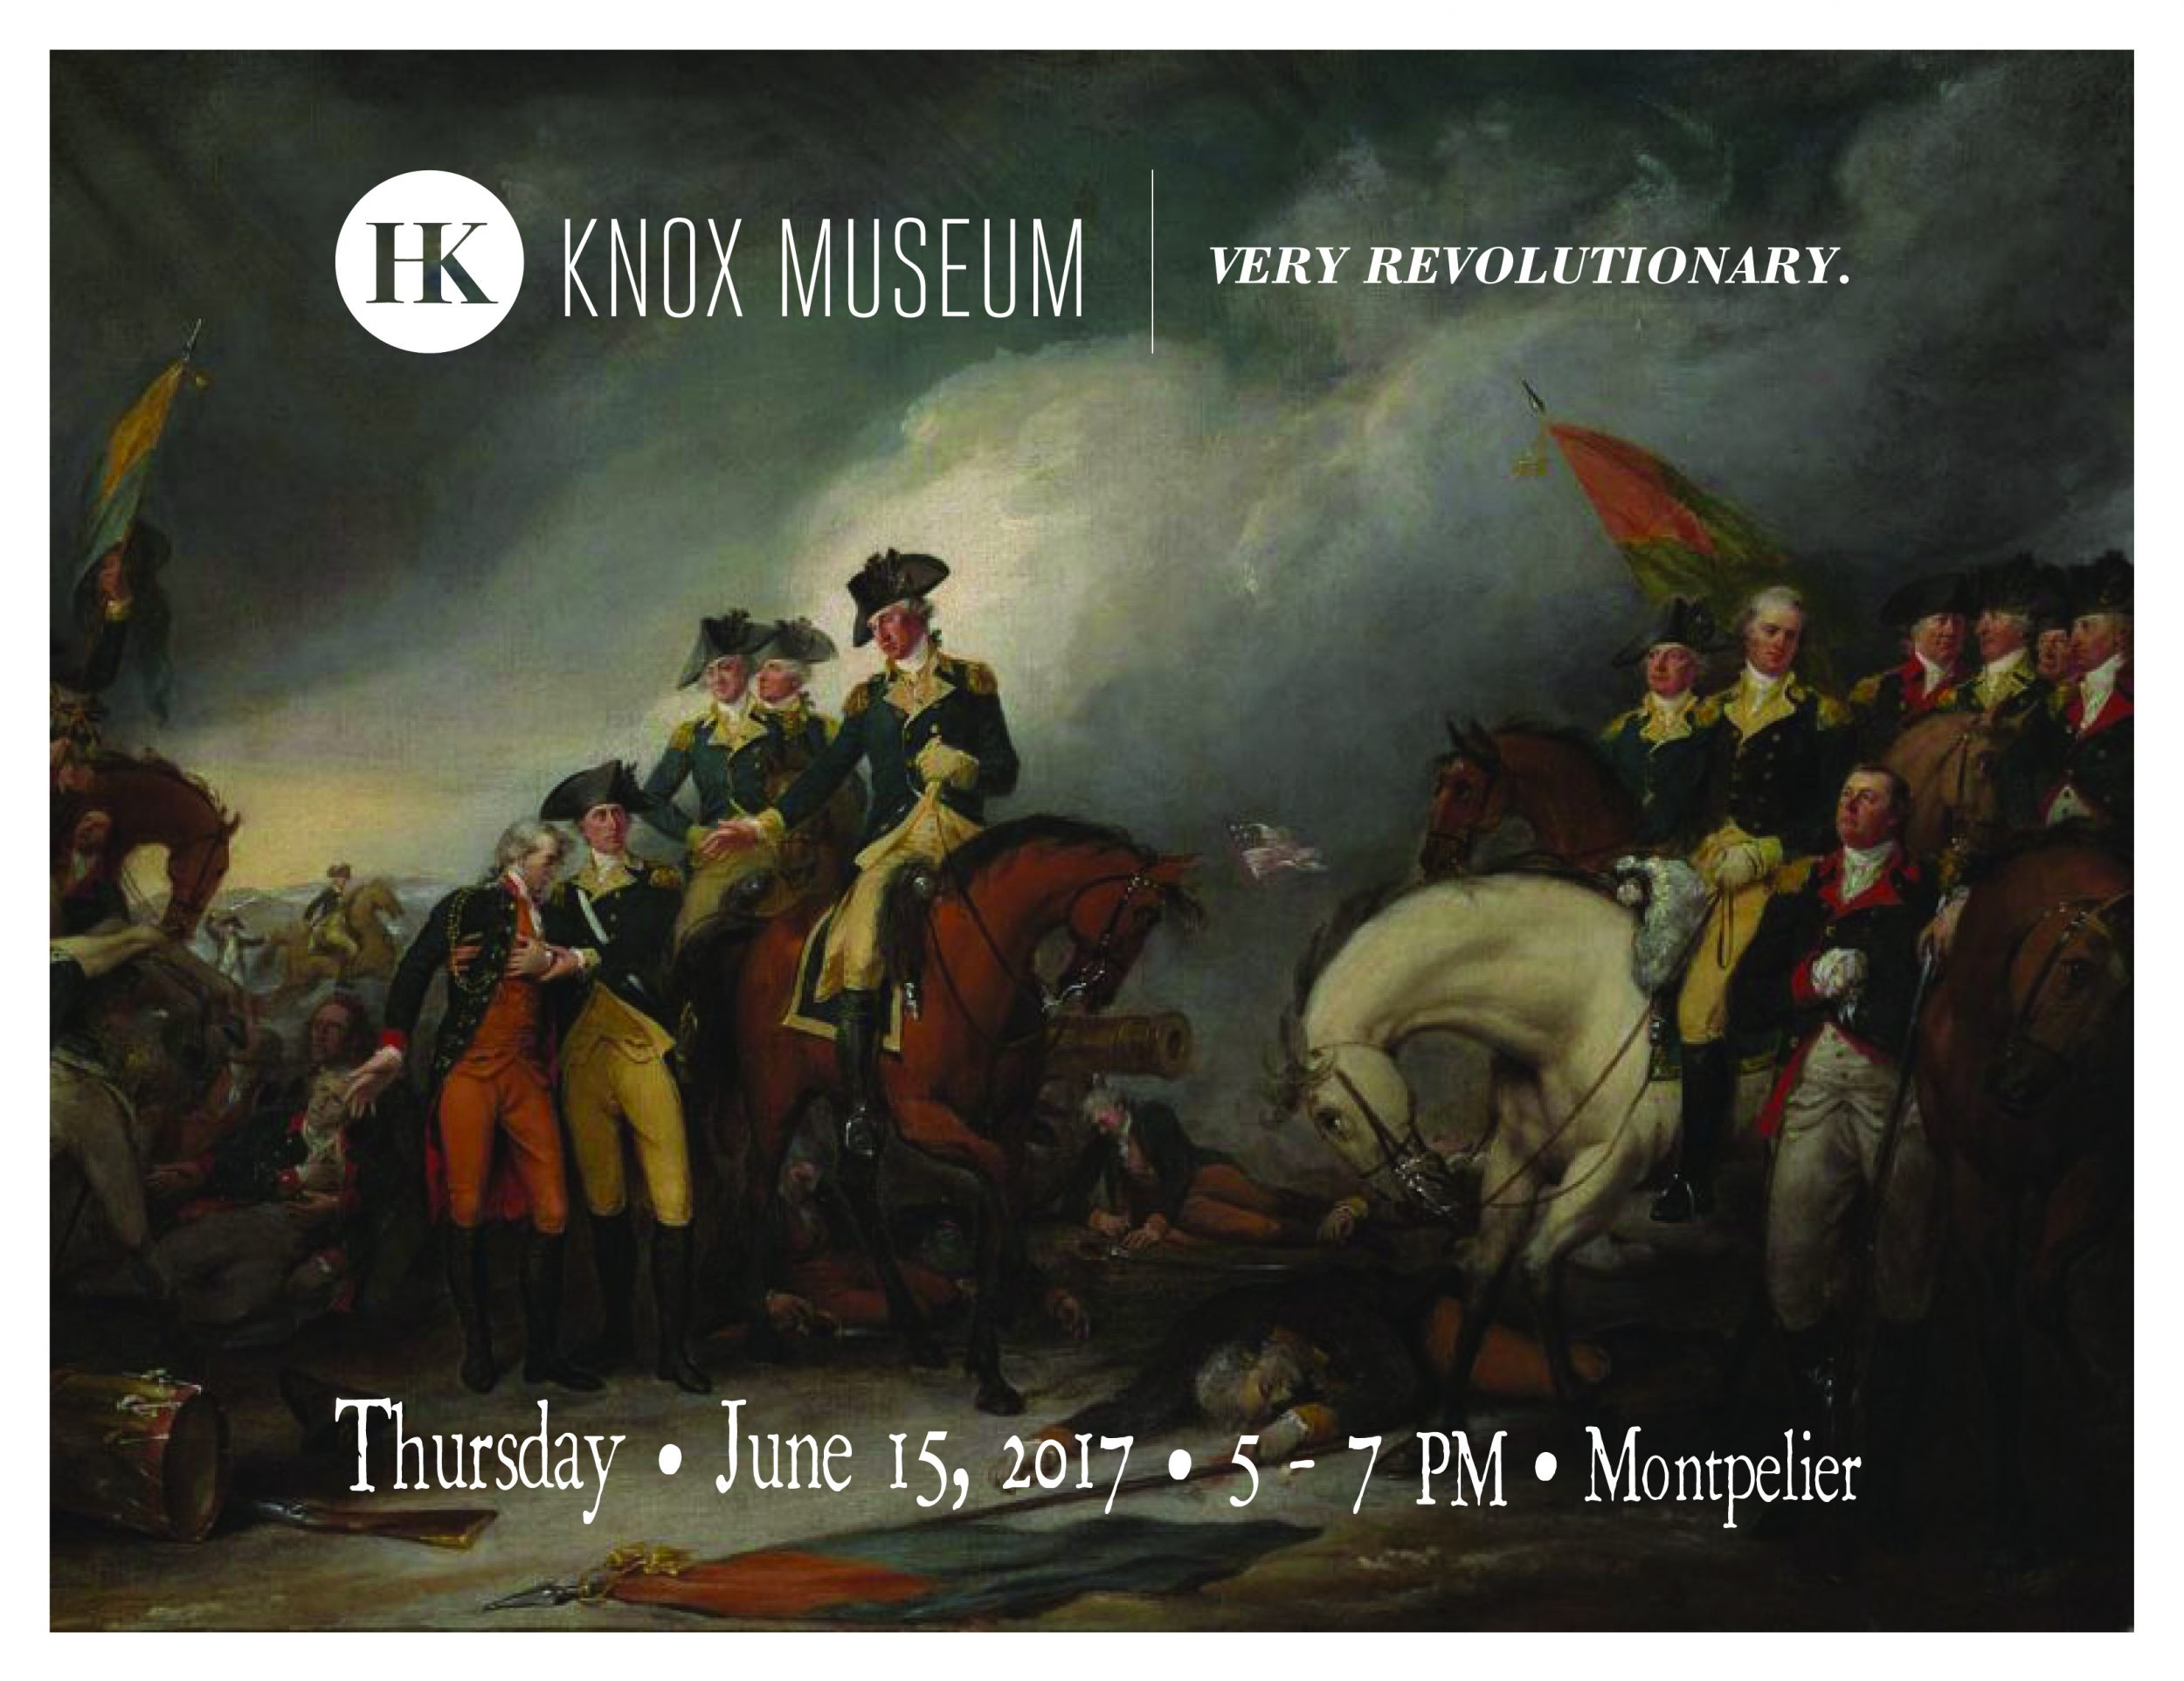 View picture of general henry knox museum montpelier thomaston - Lots Of New Things To See At Montpelier This Season If You Ve Never Been This Is The Time And If You Have Been Inside Before